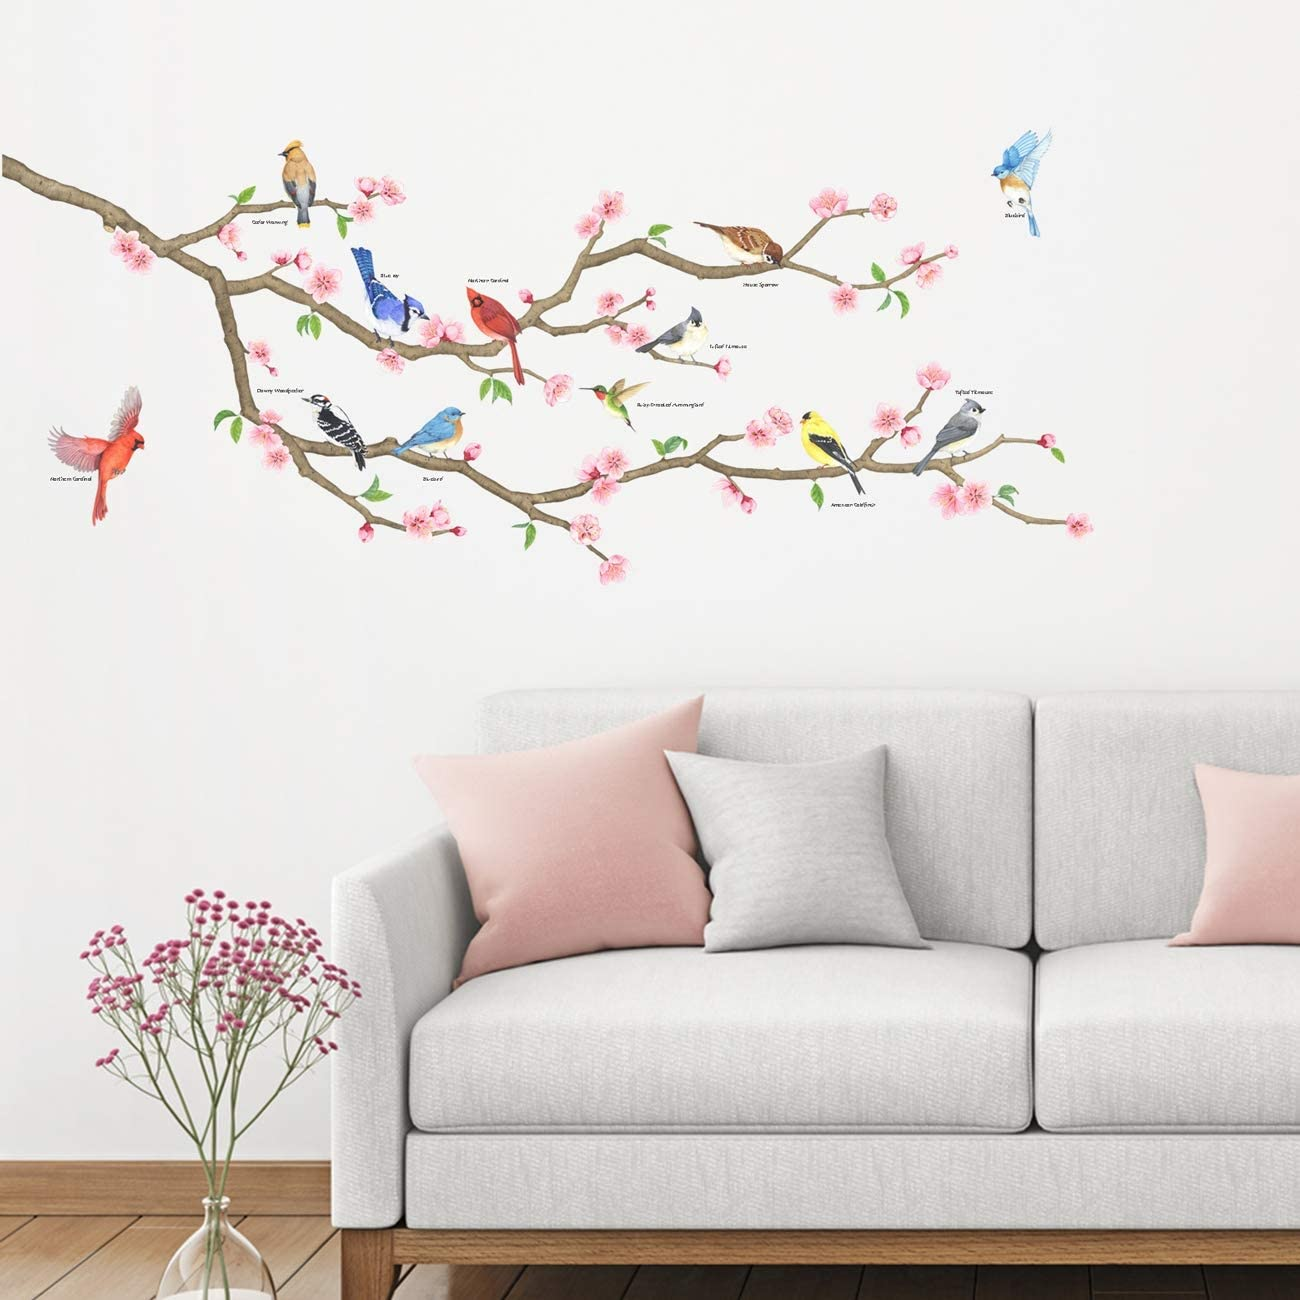 DECOWALL DAT-2004 Garden Birds on Tree Branch Kids Wall Stickers Wall Decals Peel and Stick Removable Wall Stickers for Kids Nursery Bedroom Living Room